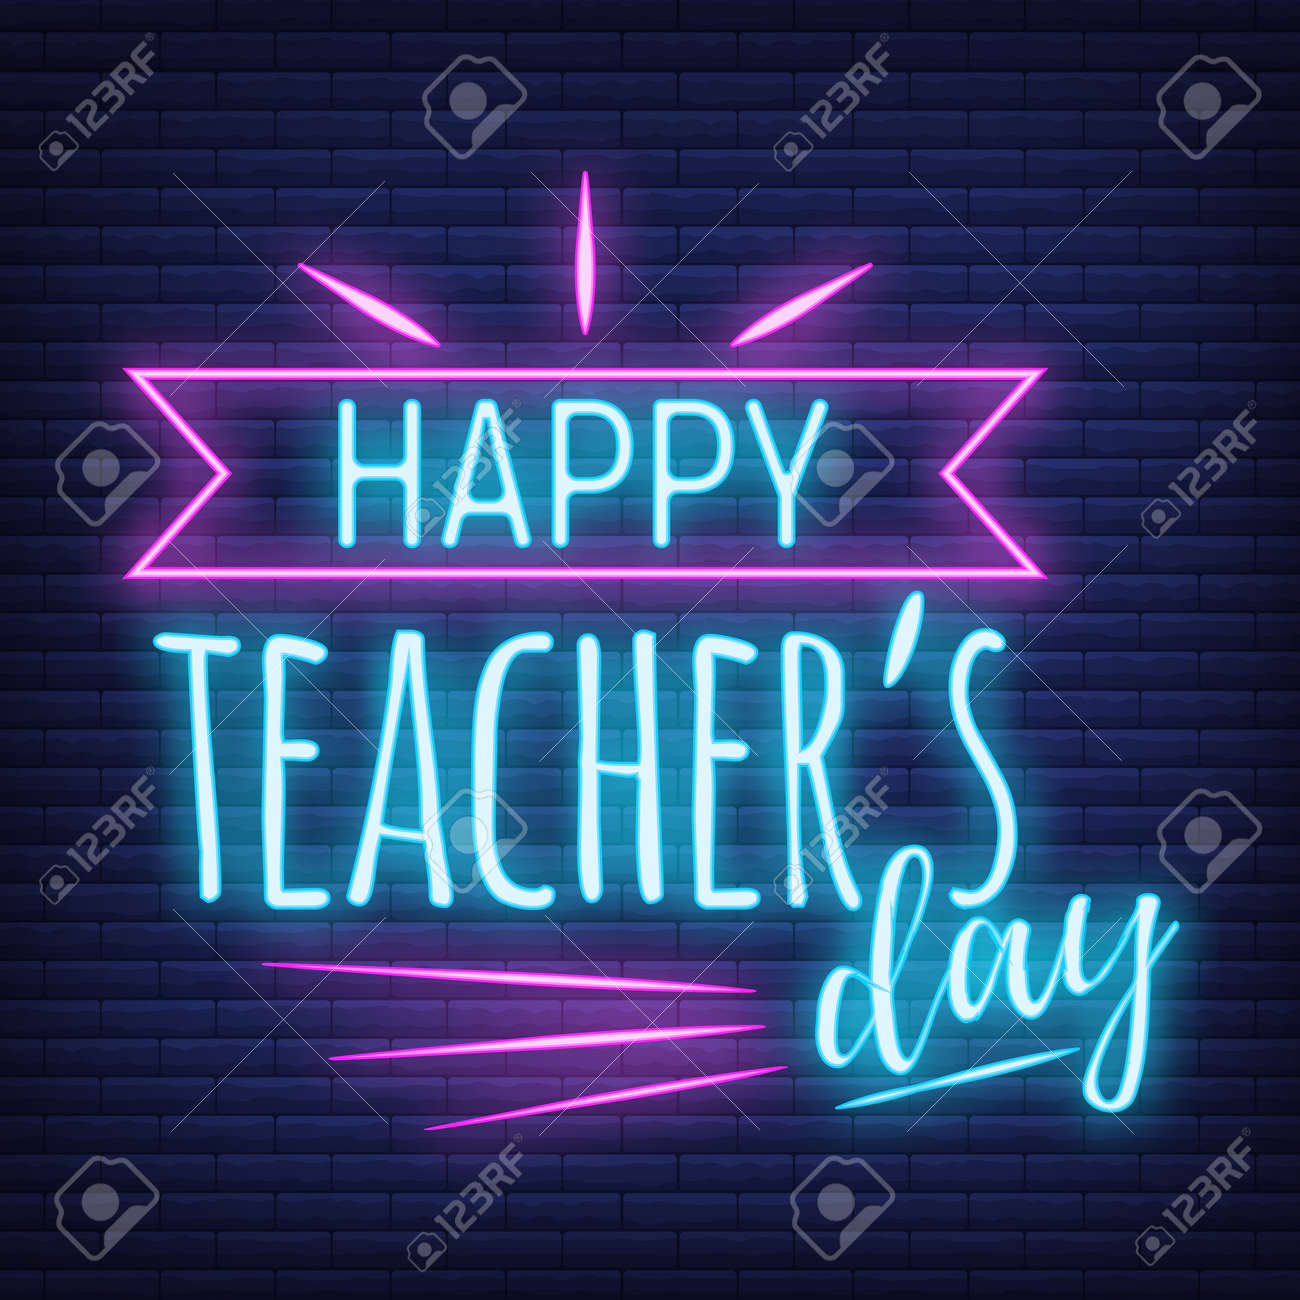 Concept neon best teacher day holiday font text quote, calligraphic inspiration celebration card flat vector illustration, decoration design label. World holiday, web banner internet page. - 166412712